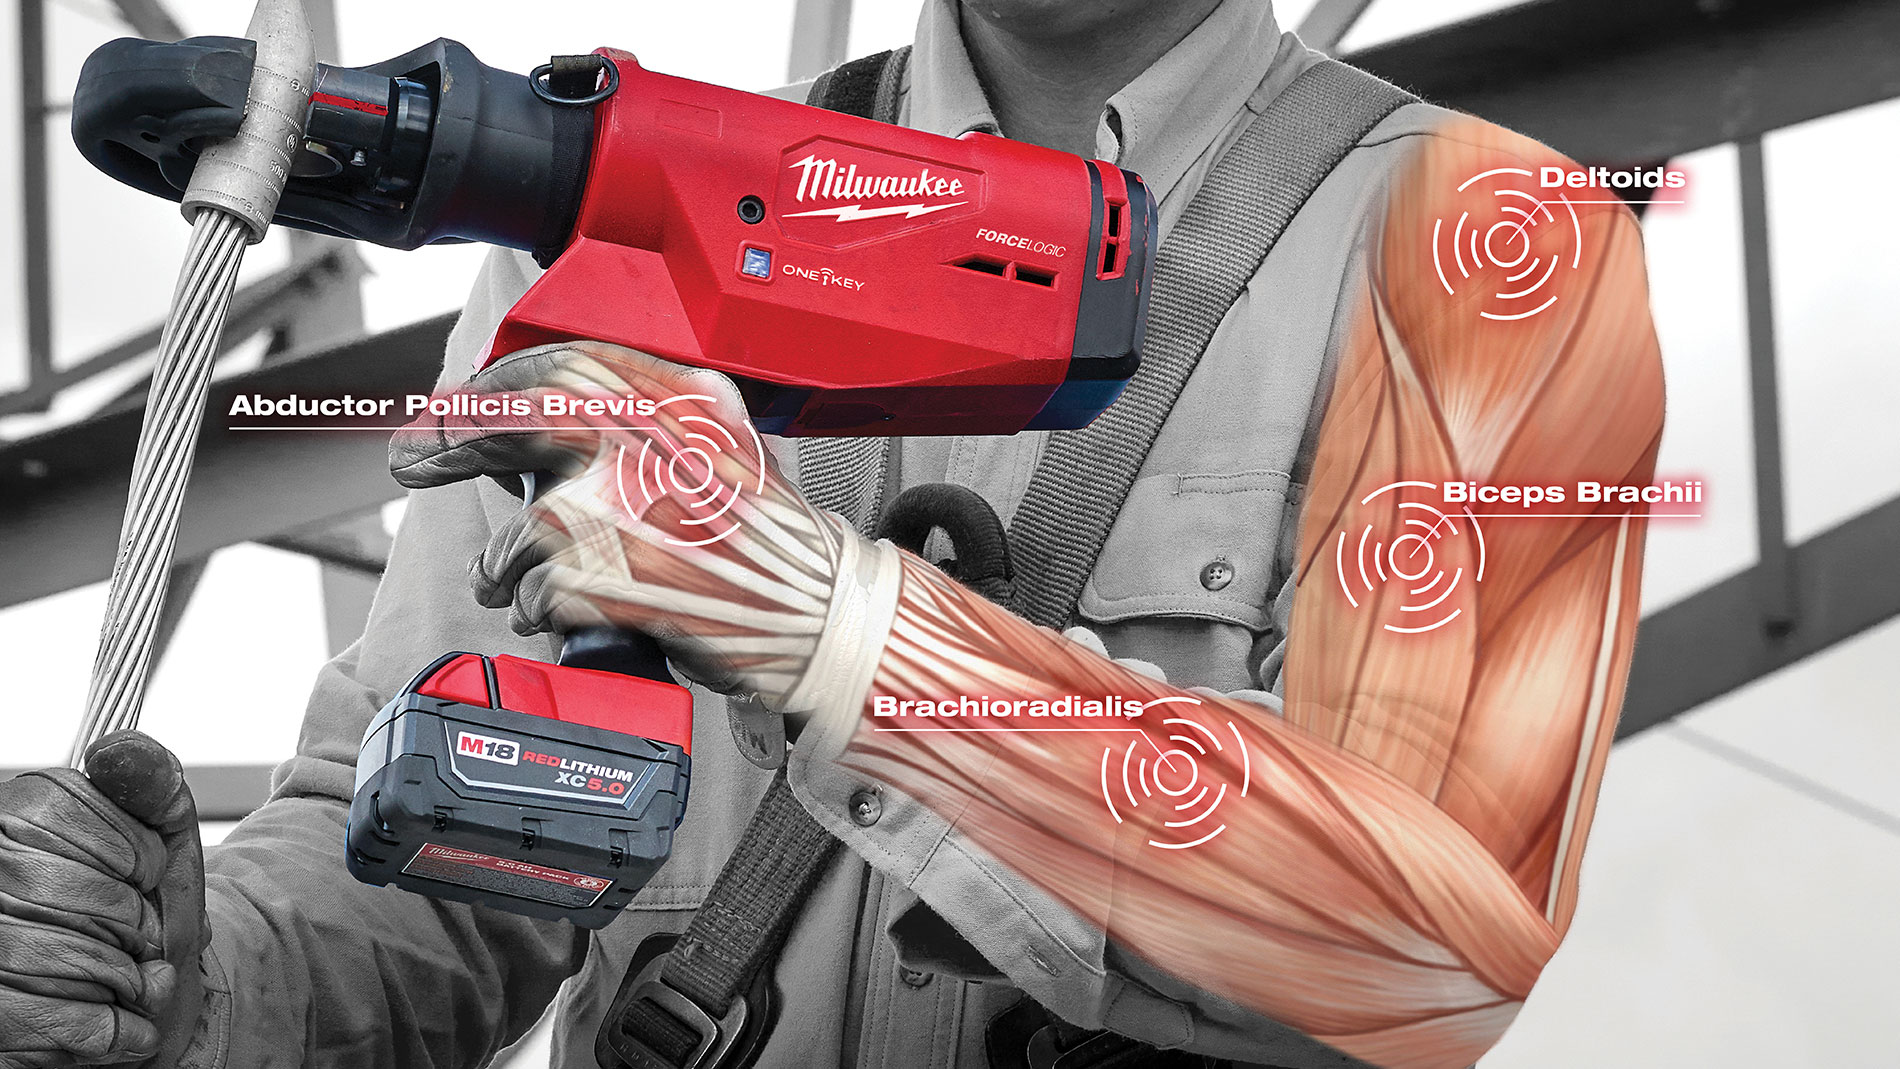 Milwaukee illustration showing the muscles used to operate power tools